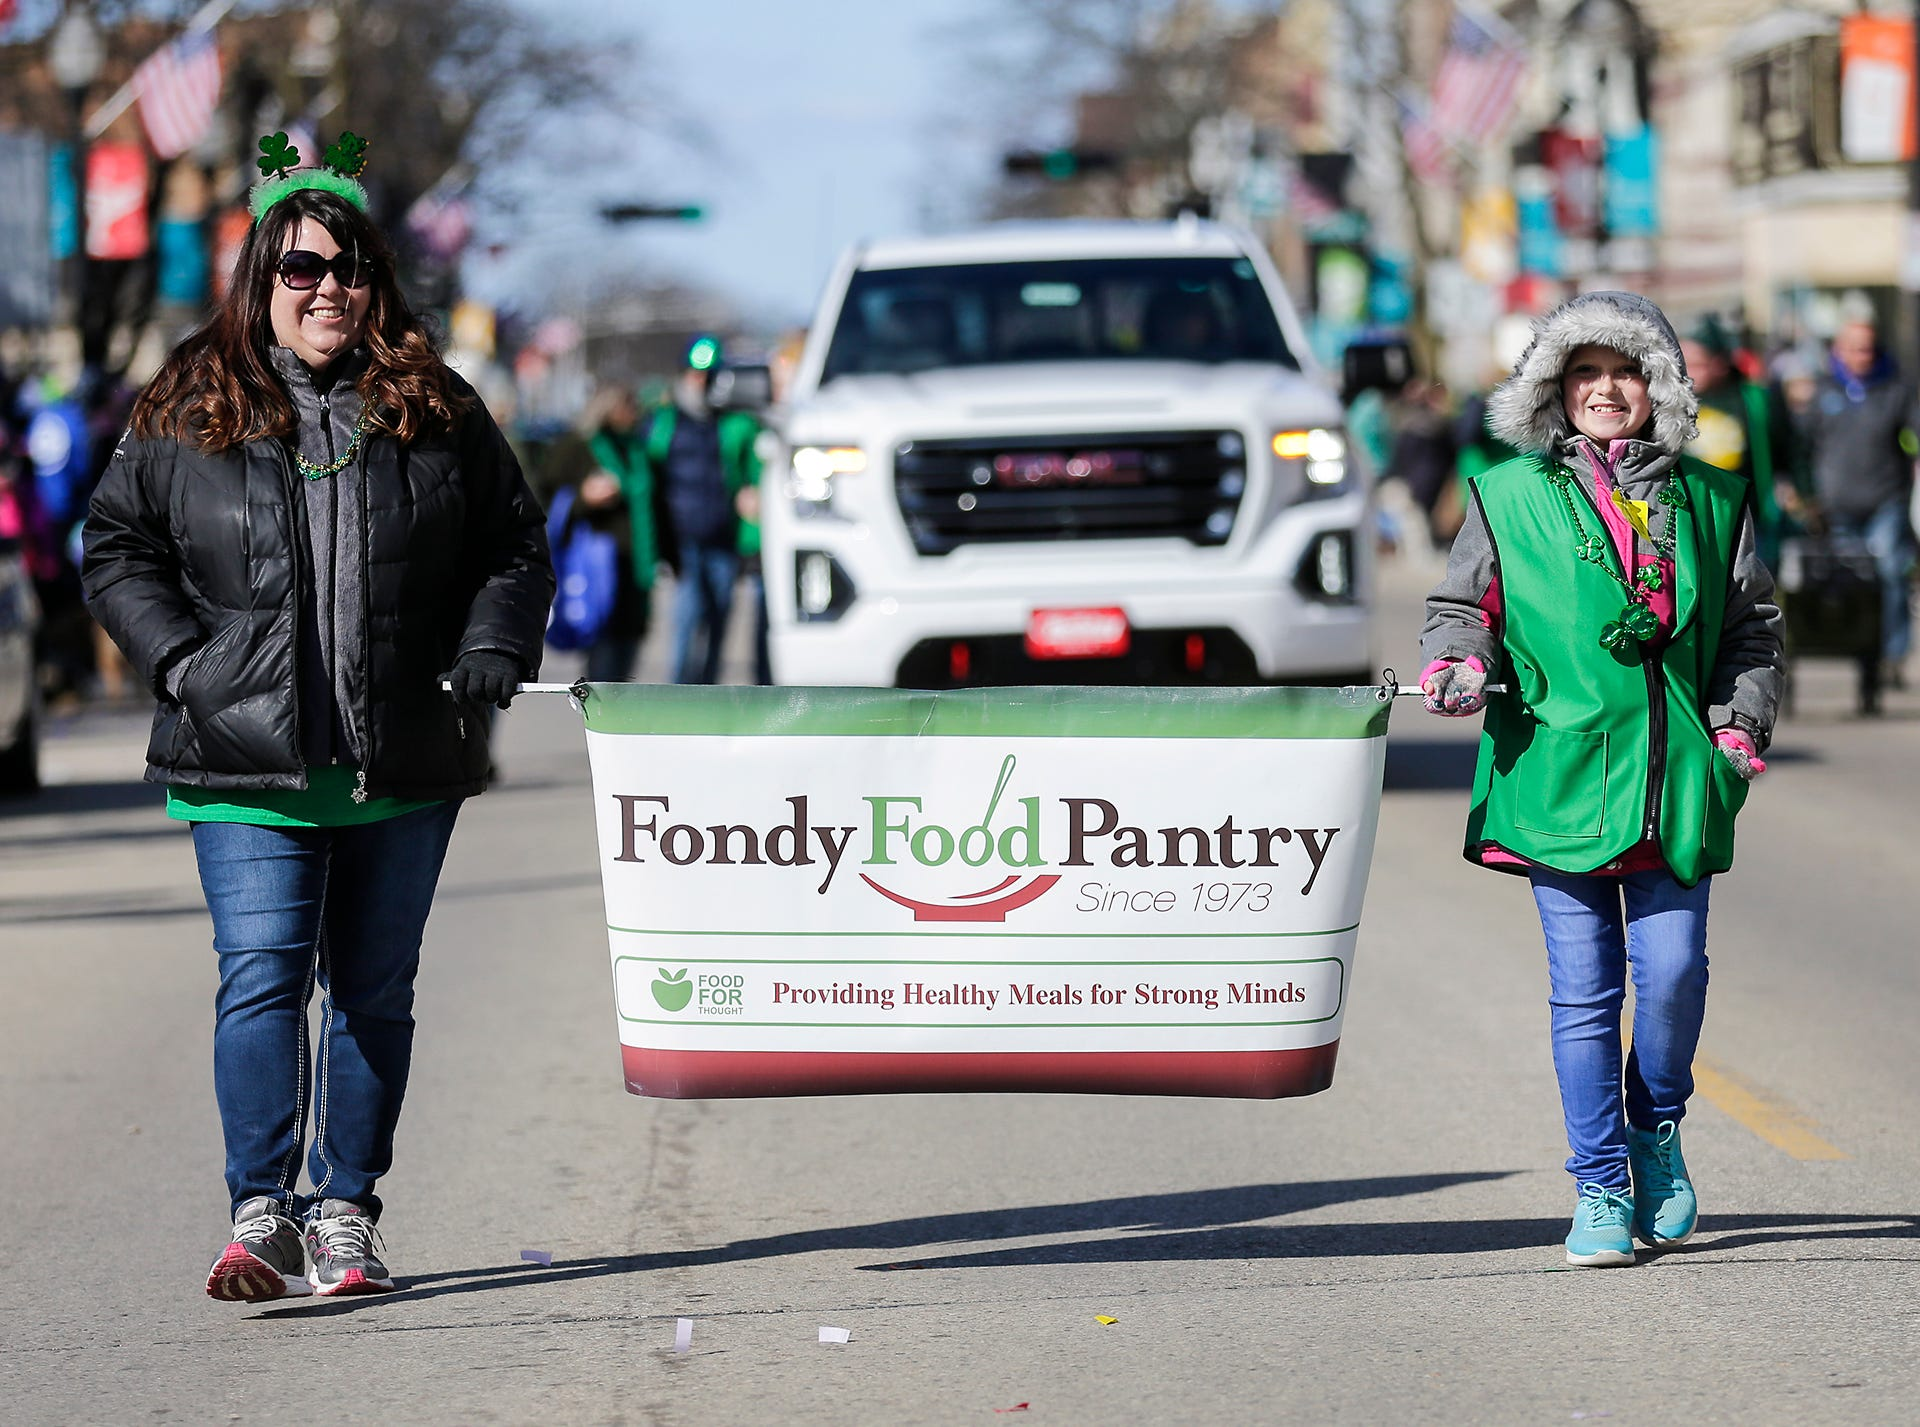 Staci and Emma Polishinski participated in the City of Fond du Lac St. Patrick's Day Parade for the Fondy Food Pantry Saturday, March 16, 2019 on Main Street in downtown Fond du Lac. Hundreds of people lined the street to watch over 50 parade participants. Doug Raflik/USA TODAY NETWORK-Wisconsin